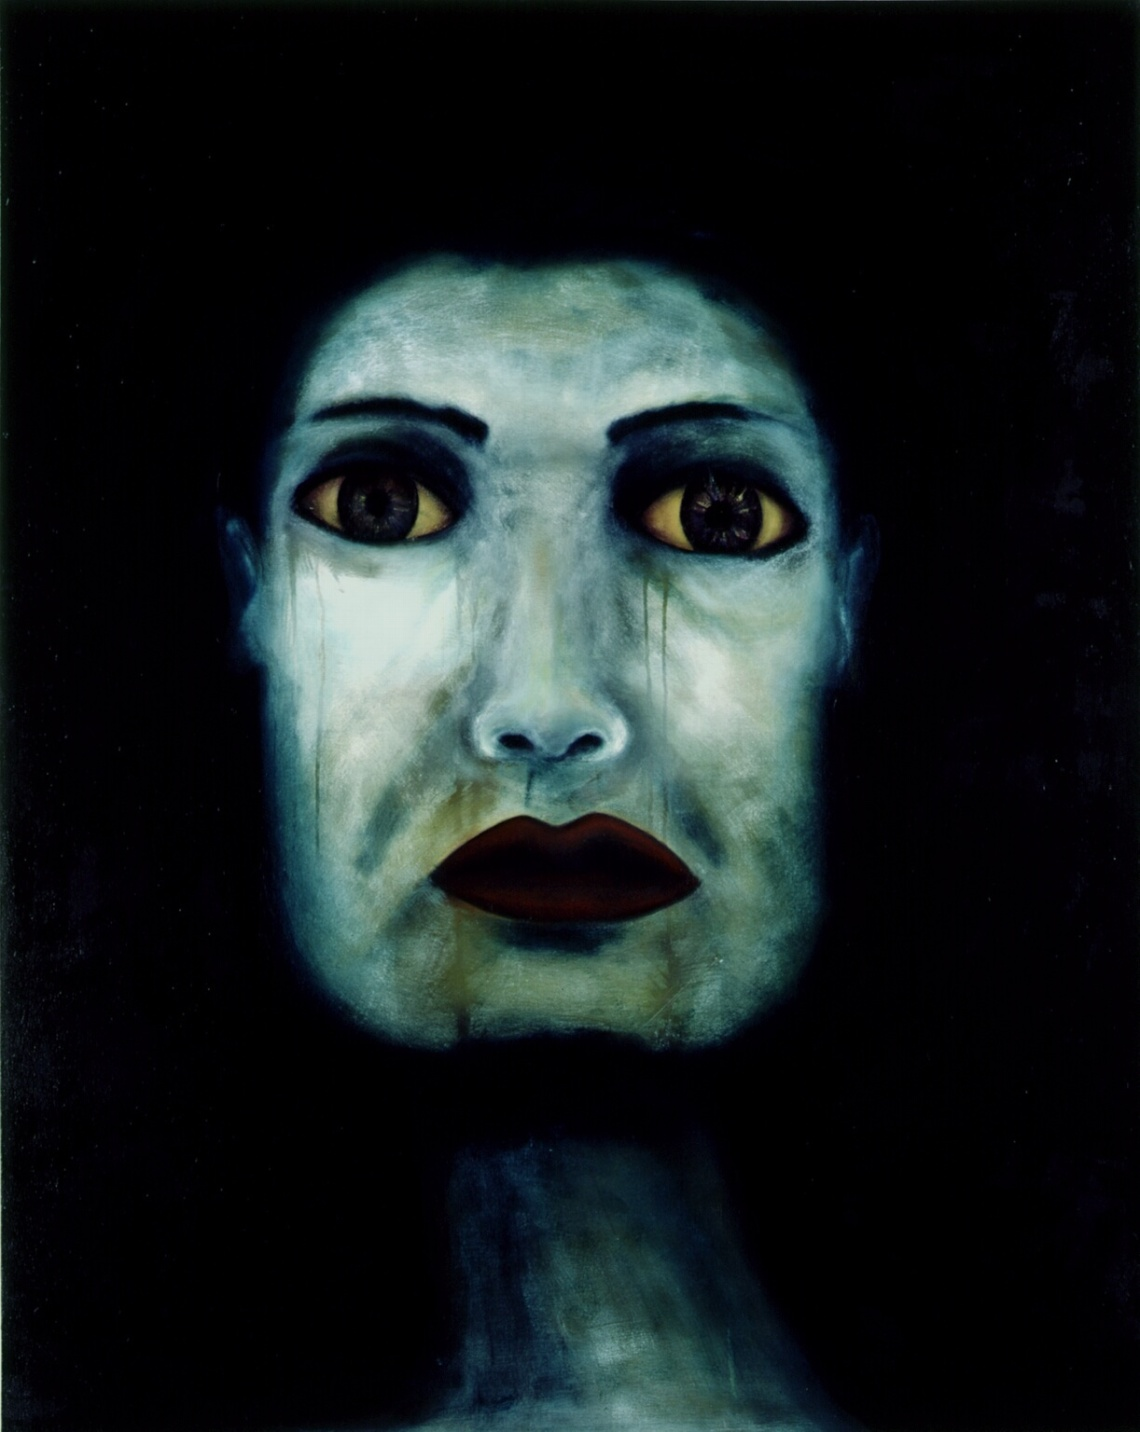 White_Face_Oil_on_Canvas_6_x4_1990 by Ruth Chase